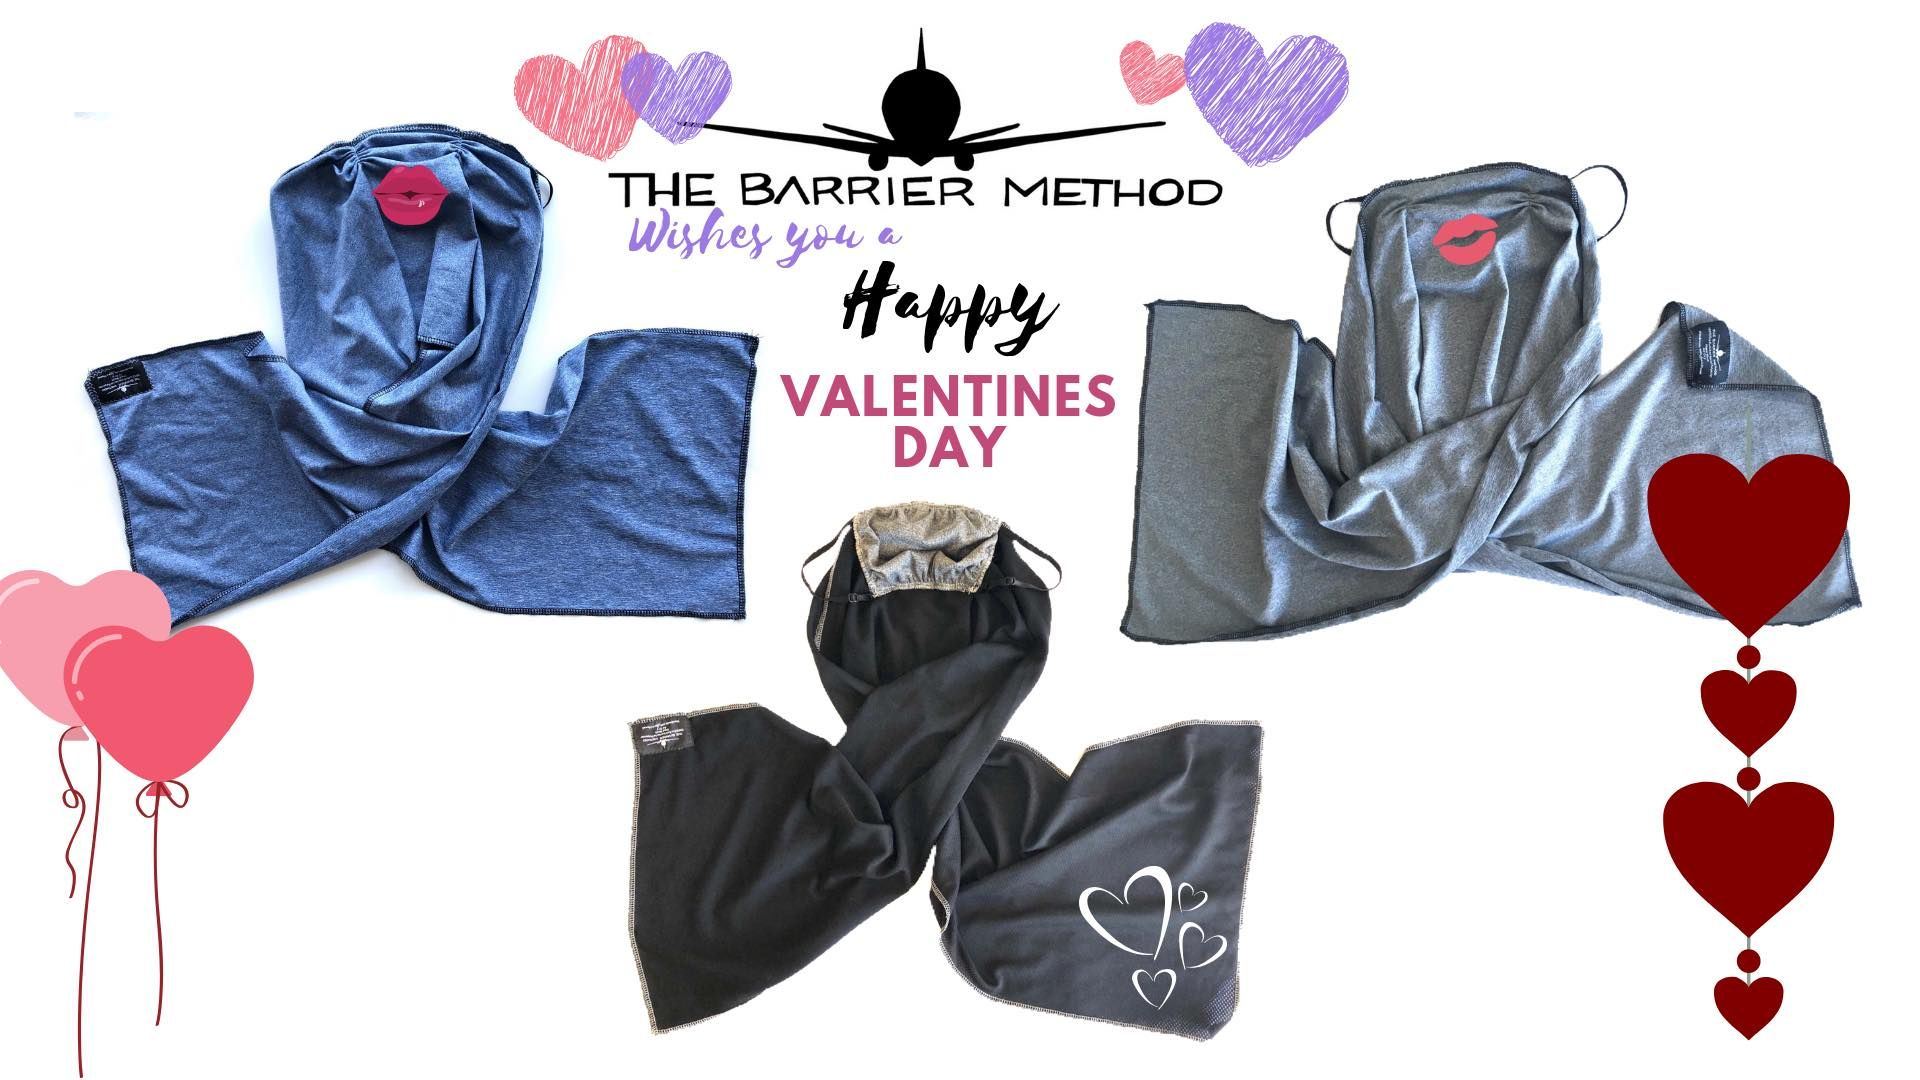 90bad34c3df Order yours today The Barrier Method-A Travel Health Company featuring  their Barrier Method scarf mask combo made in Hawaii. Anti-Microbile